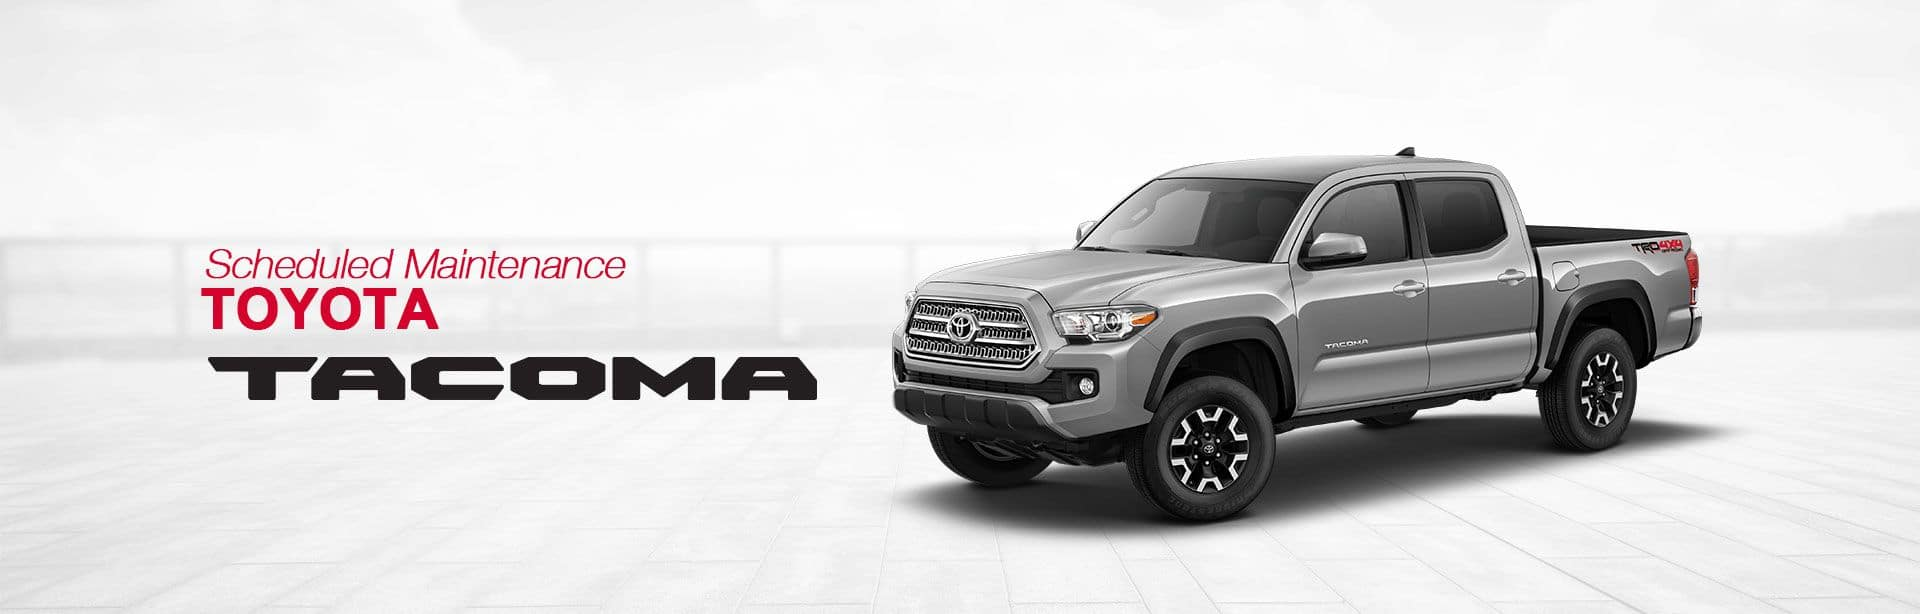 toyota tacoma scheduled maintenance | south dade toyota of homestead